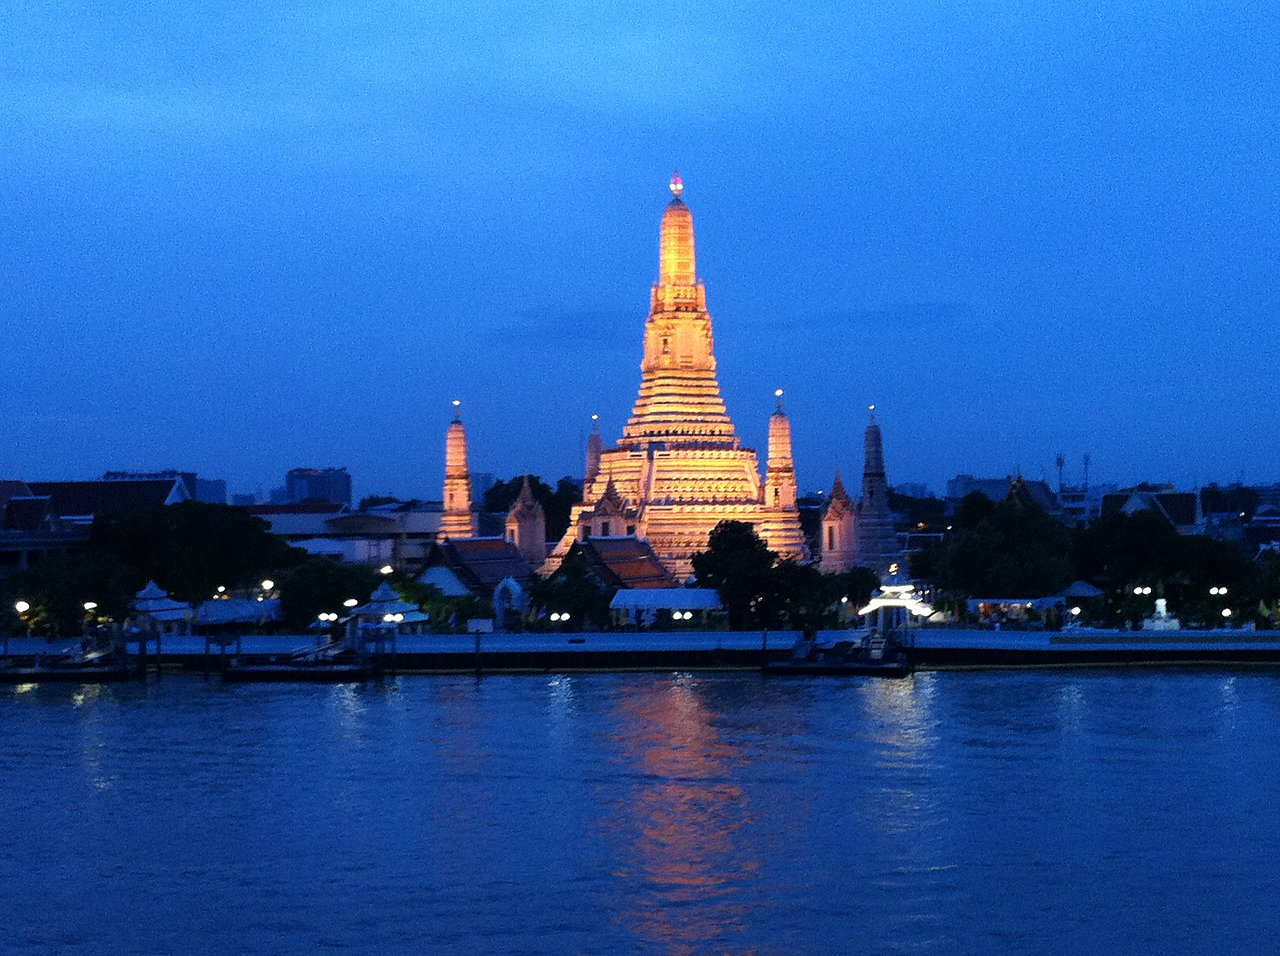 Bangkok. The view from our hotel window. Wat Arun. | Photo taken by Rodney S